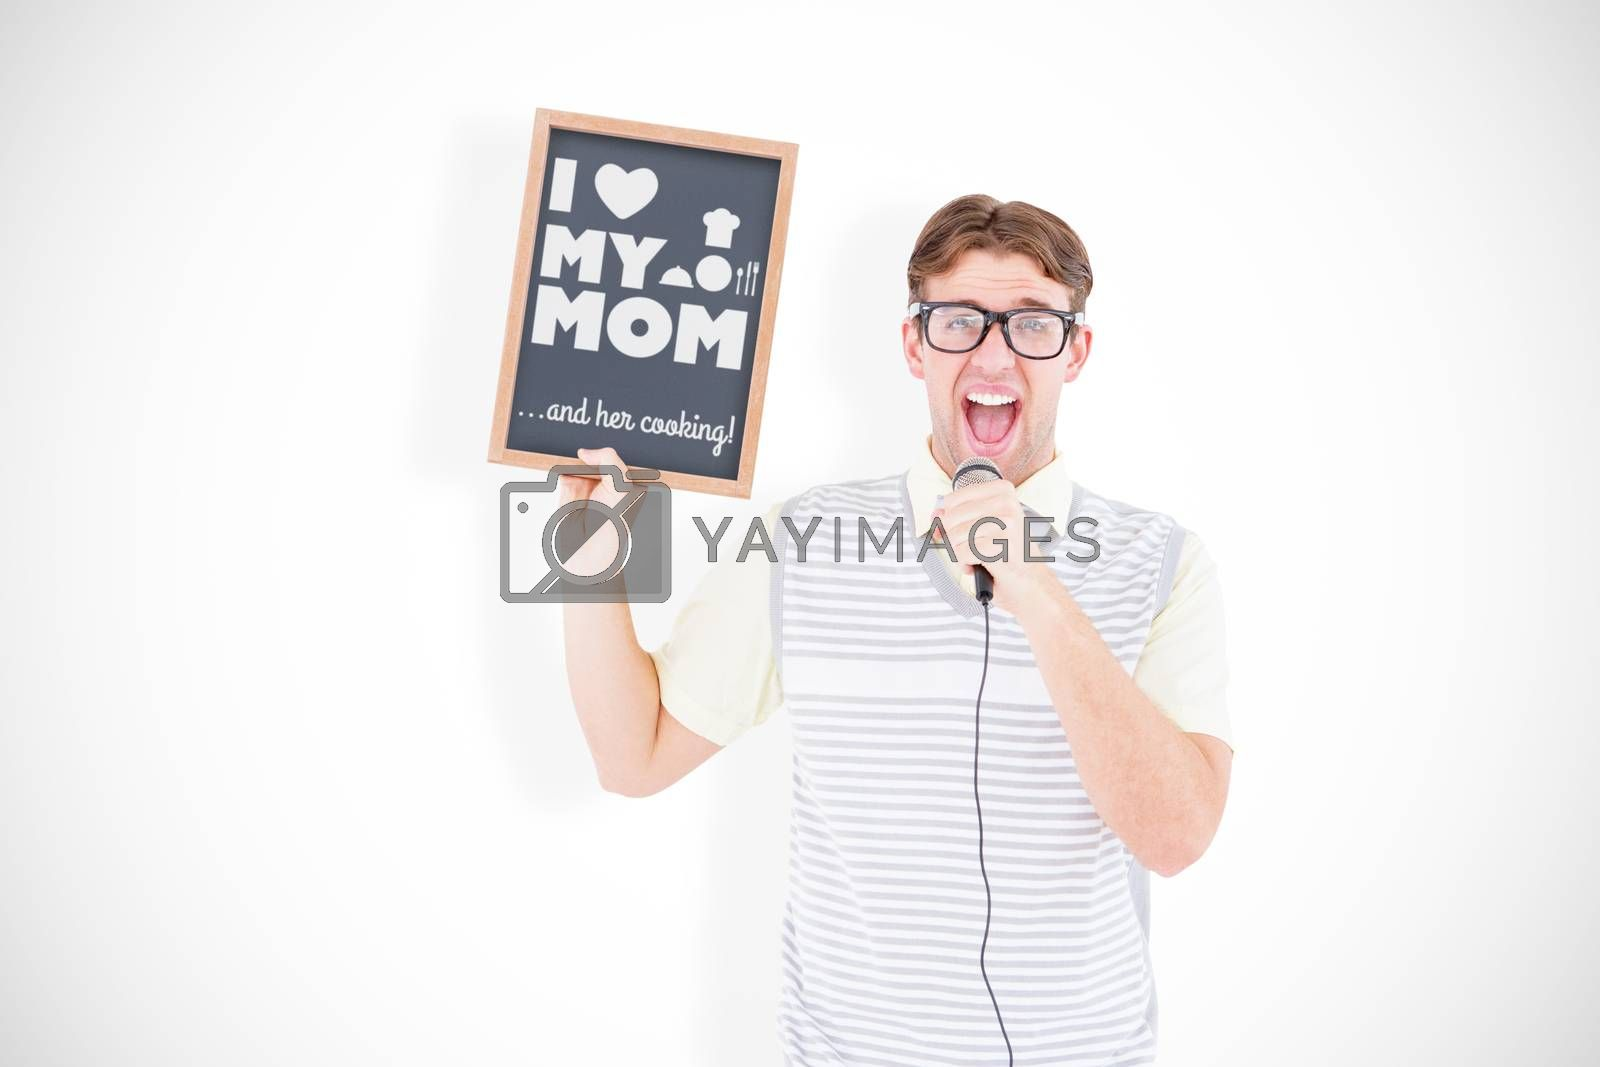 Geeky hipster holding blackboard and singing into microphone against mothers day greeting